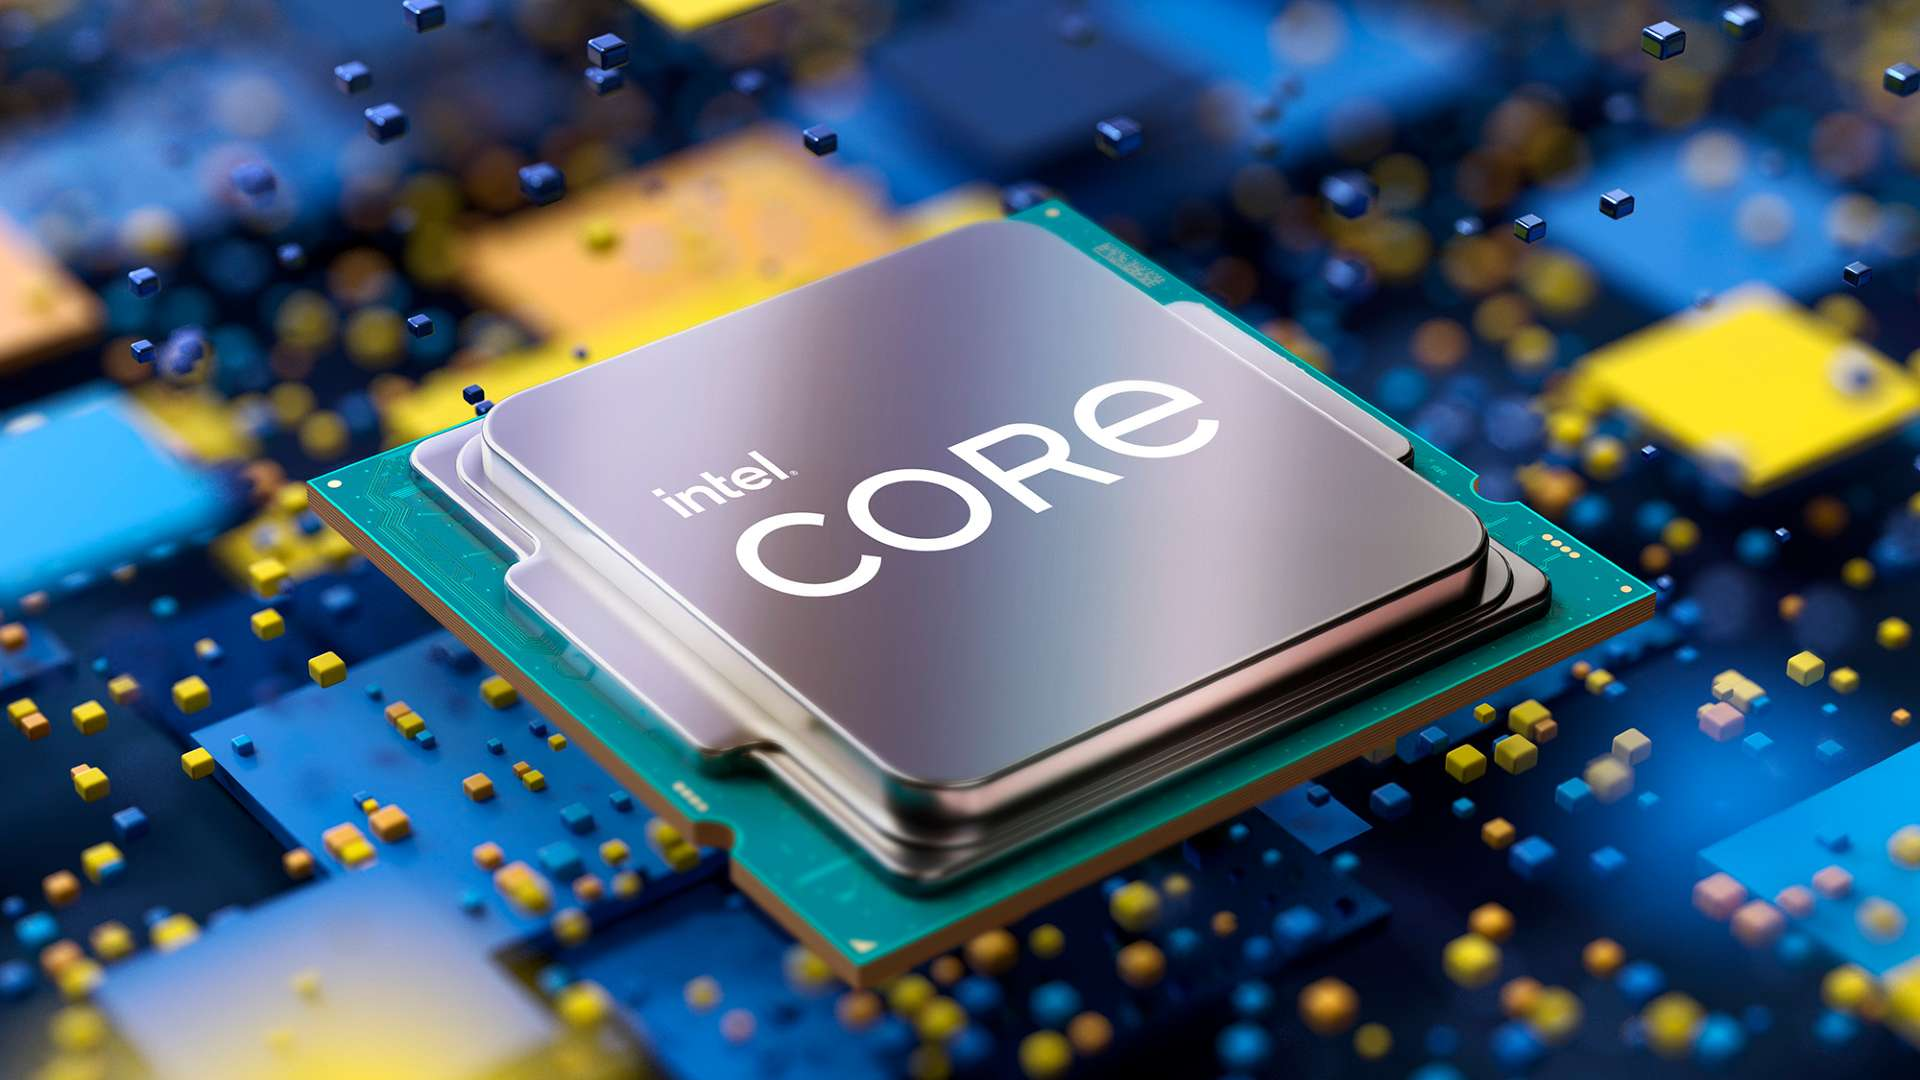 You can guarantee a 5.1GHz Intel i9 11900K gaming CPU if you have $879 spare